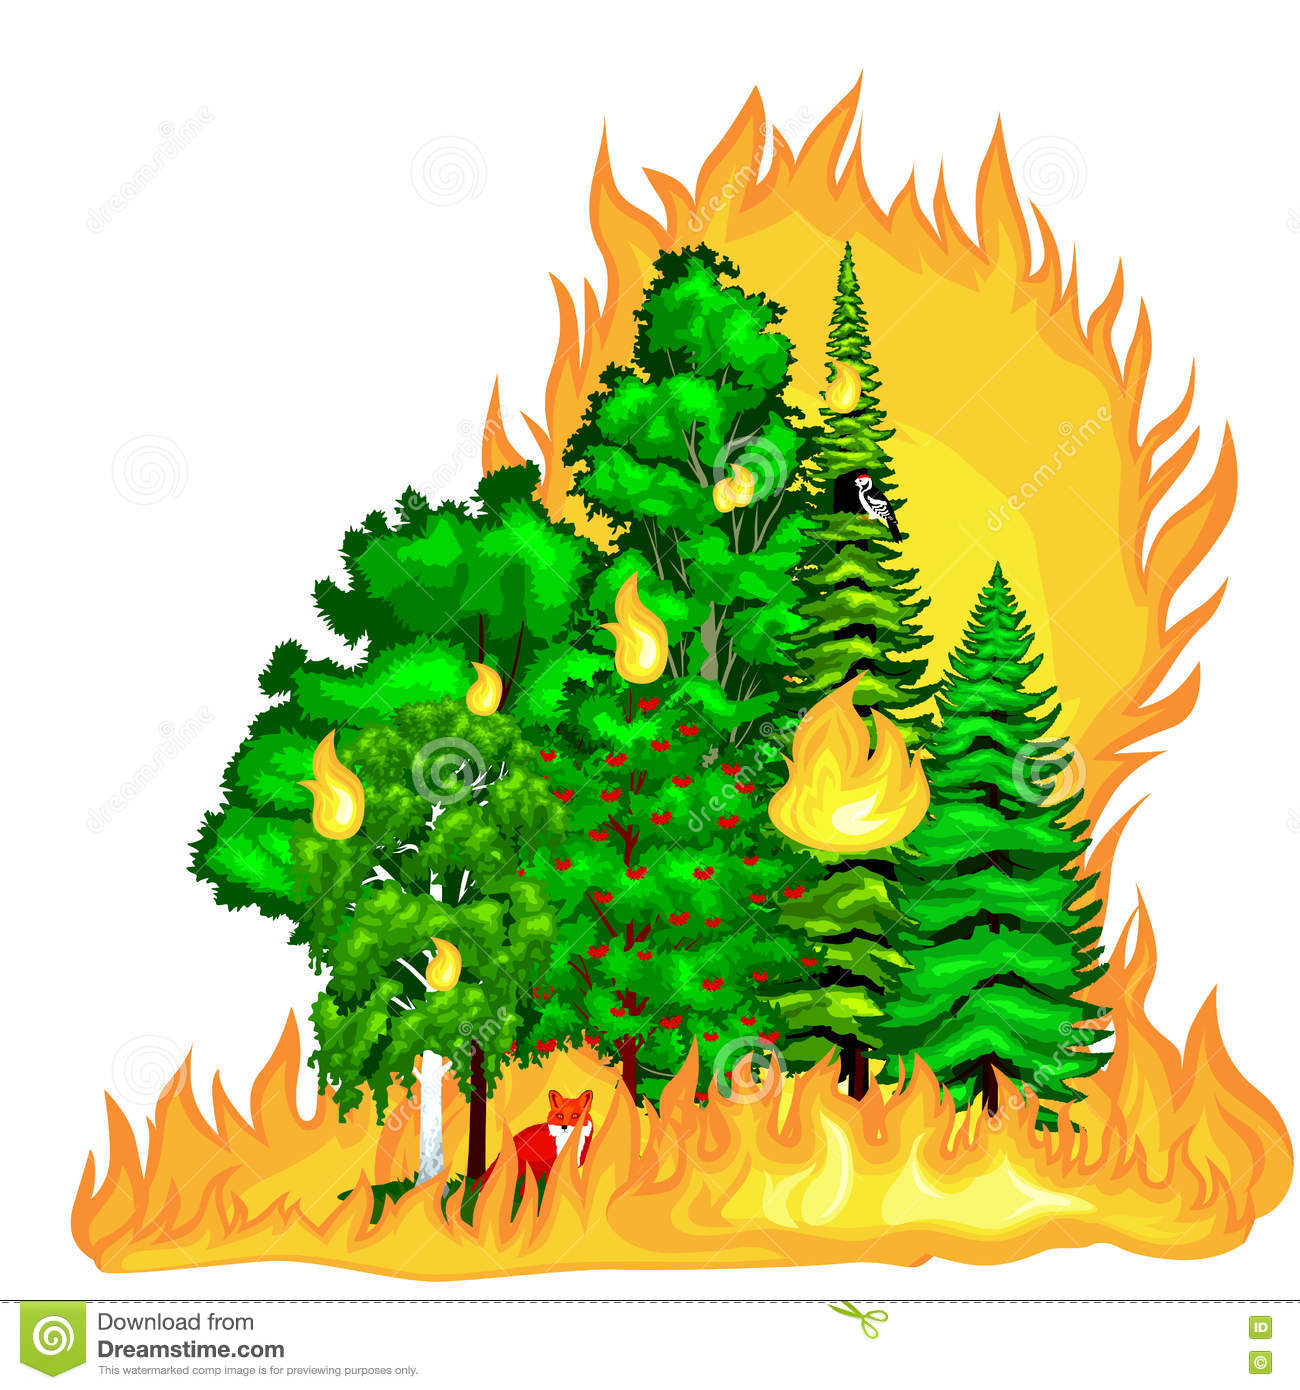 Burning Hot Tree Royalty Free Stock Images.